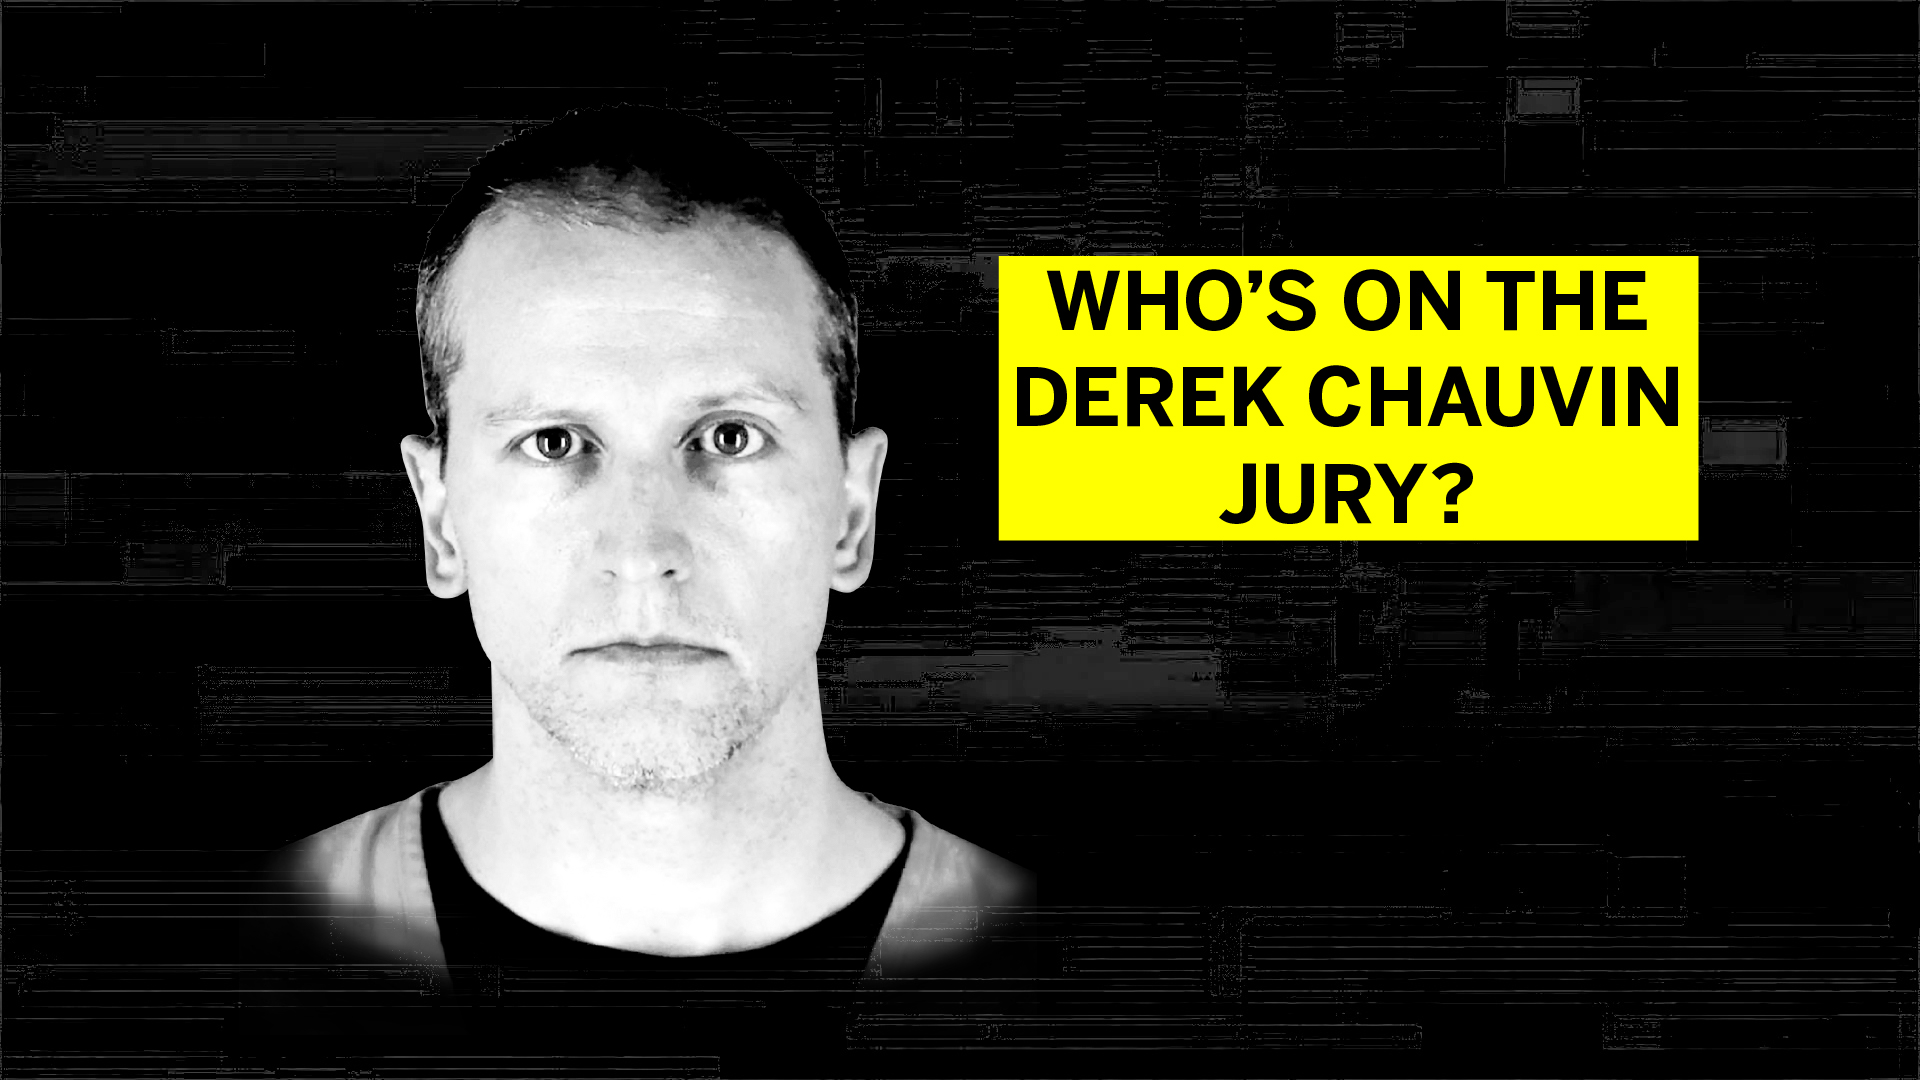 These jurors will decide if Derek Chauvin is guilty of murdering George Floyd